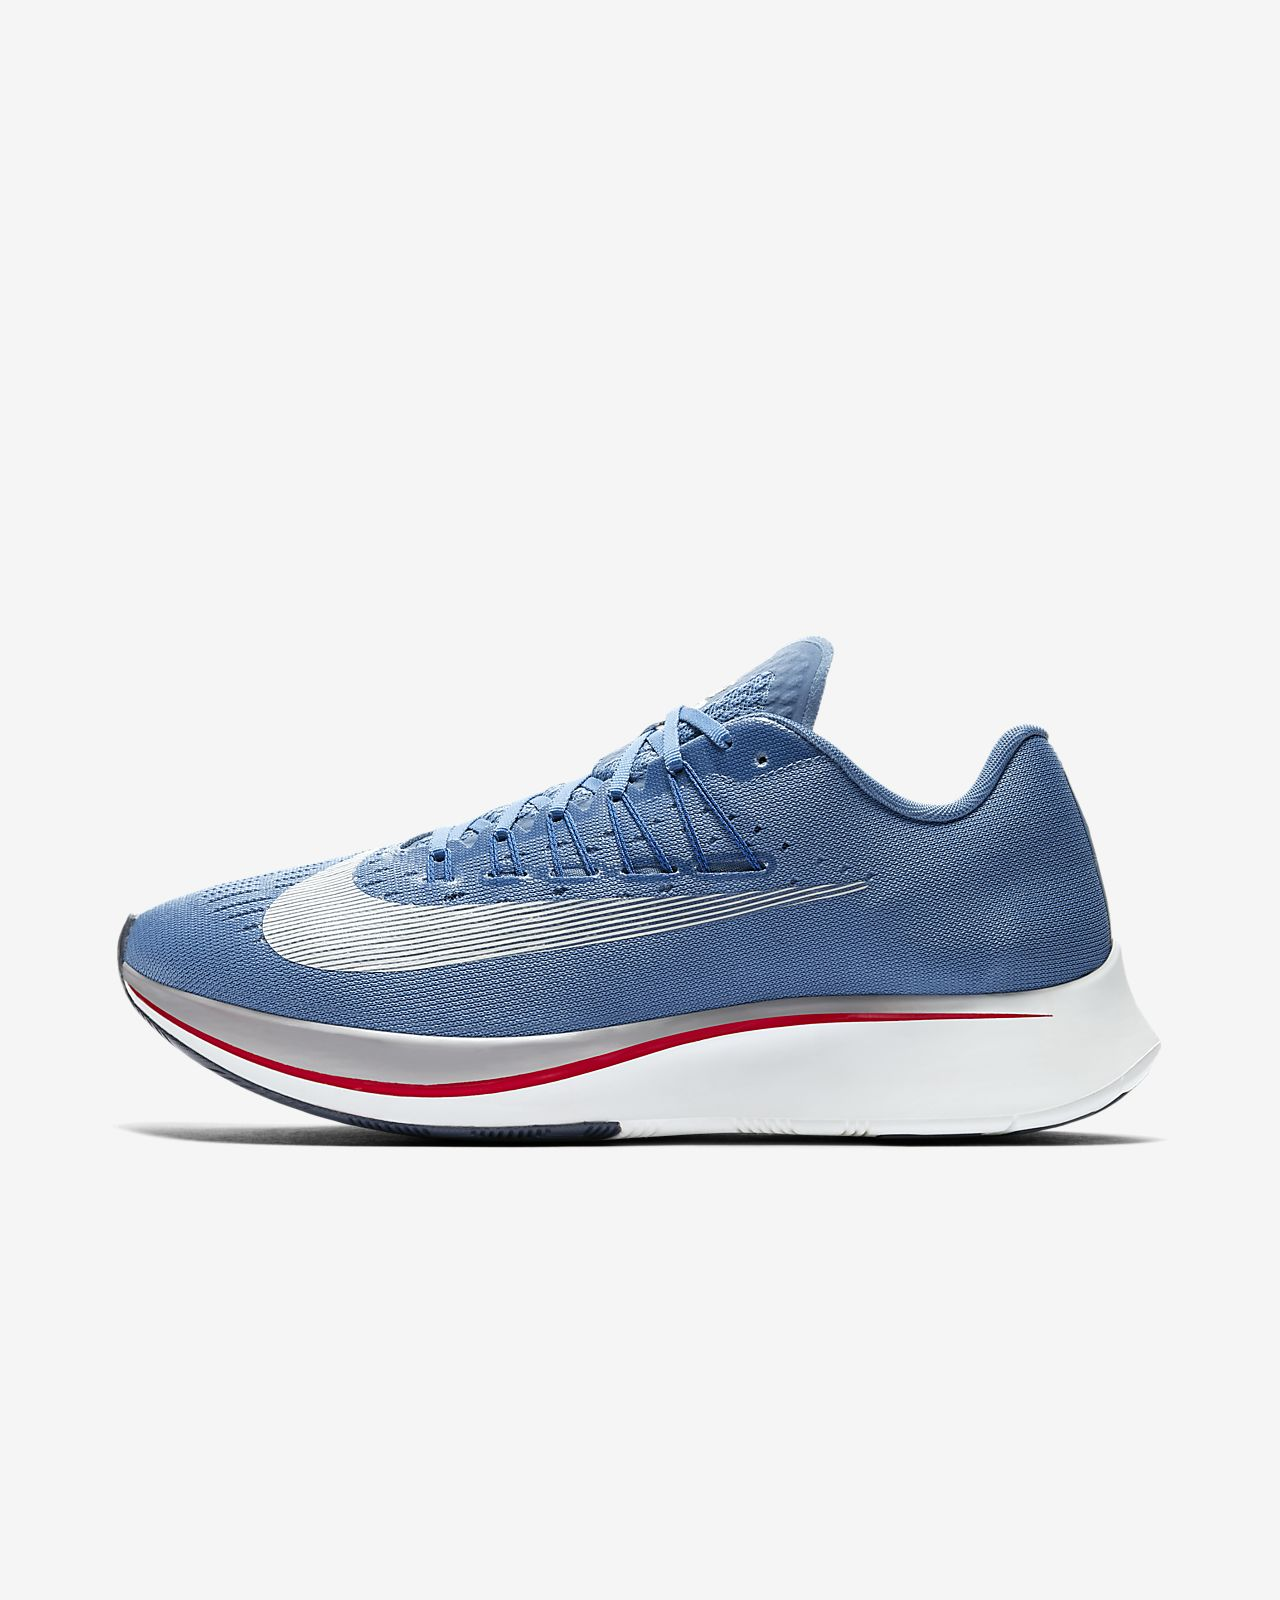 ... Nike Zoom Fly Men's Running Shoe